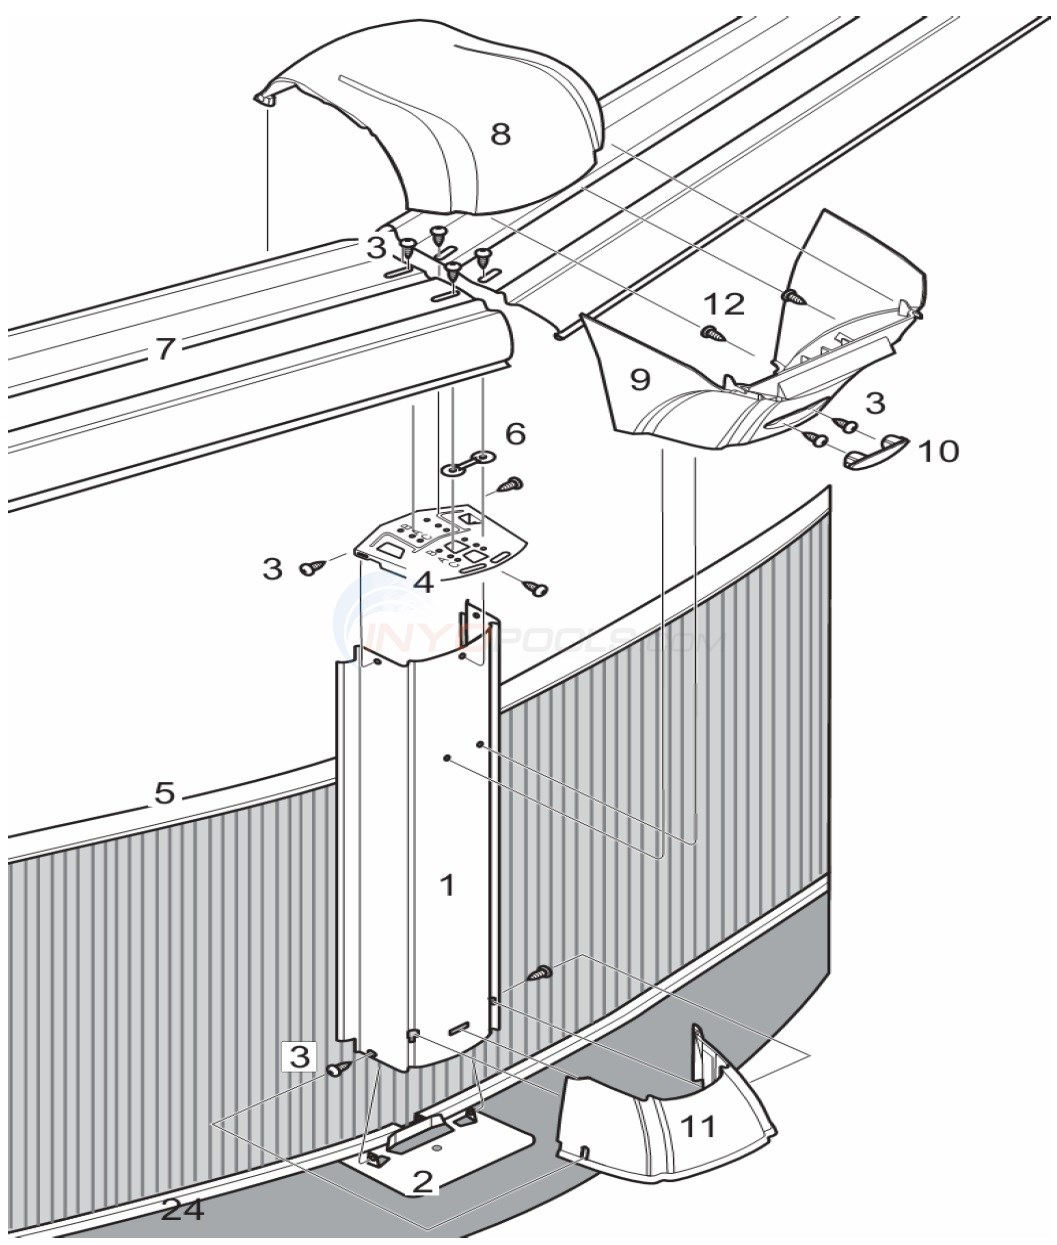 "Belize 33' Round 52"" Wall (Steel Top Rail, Steel Upright) Diagram"